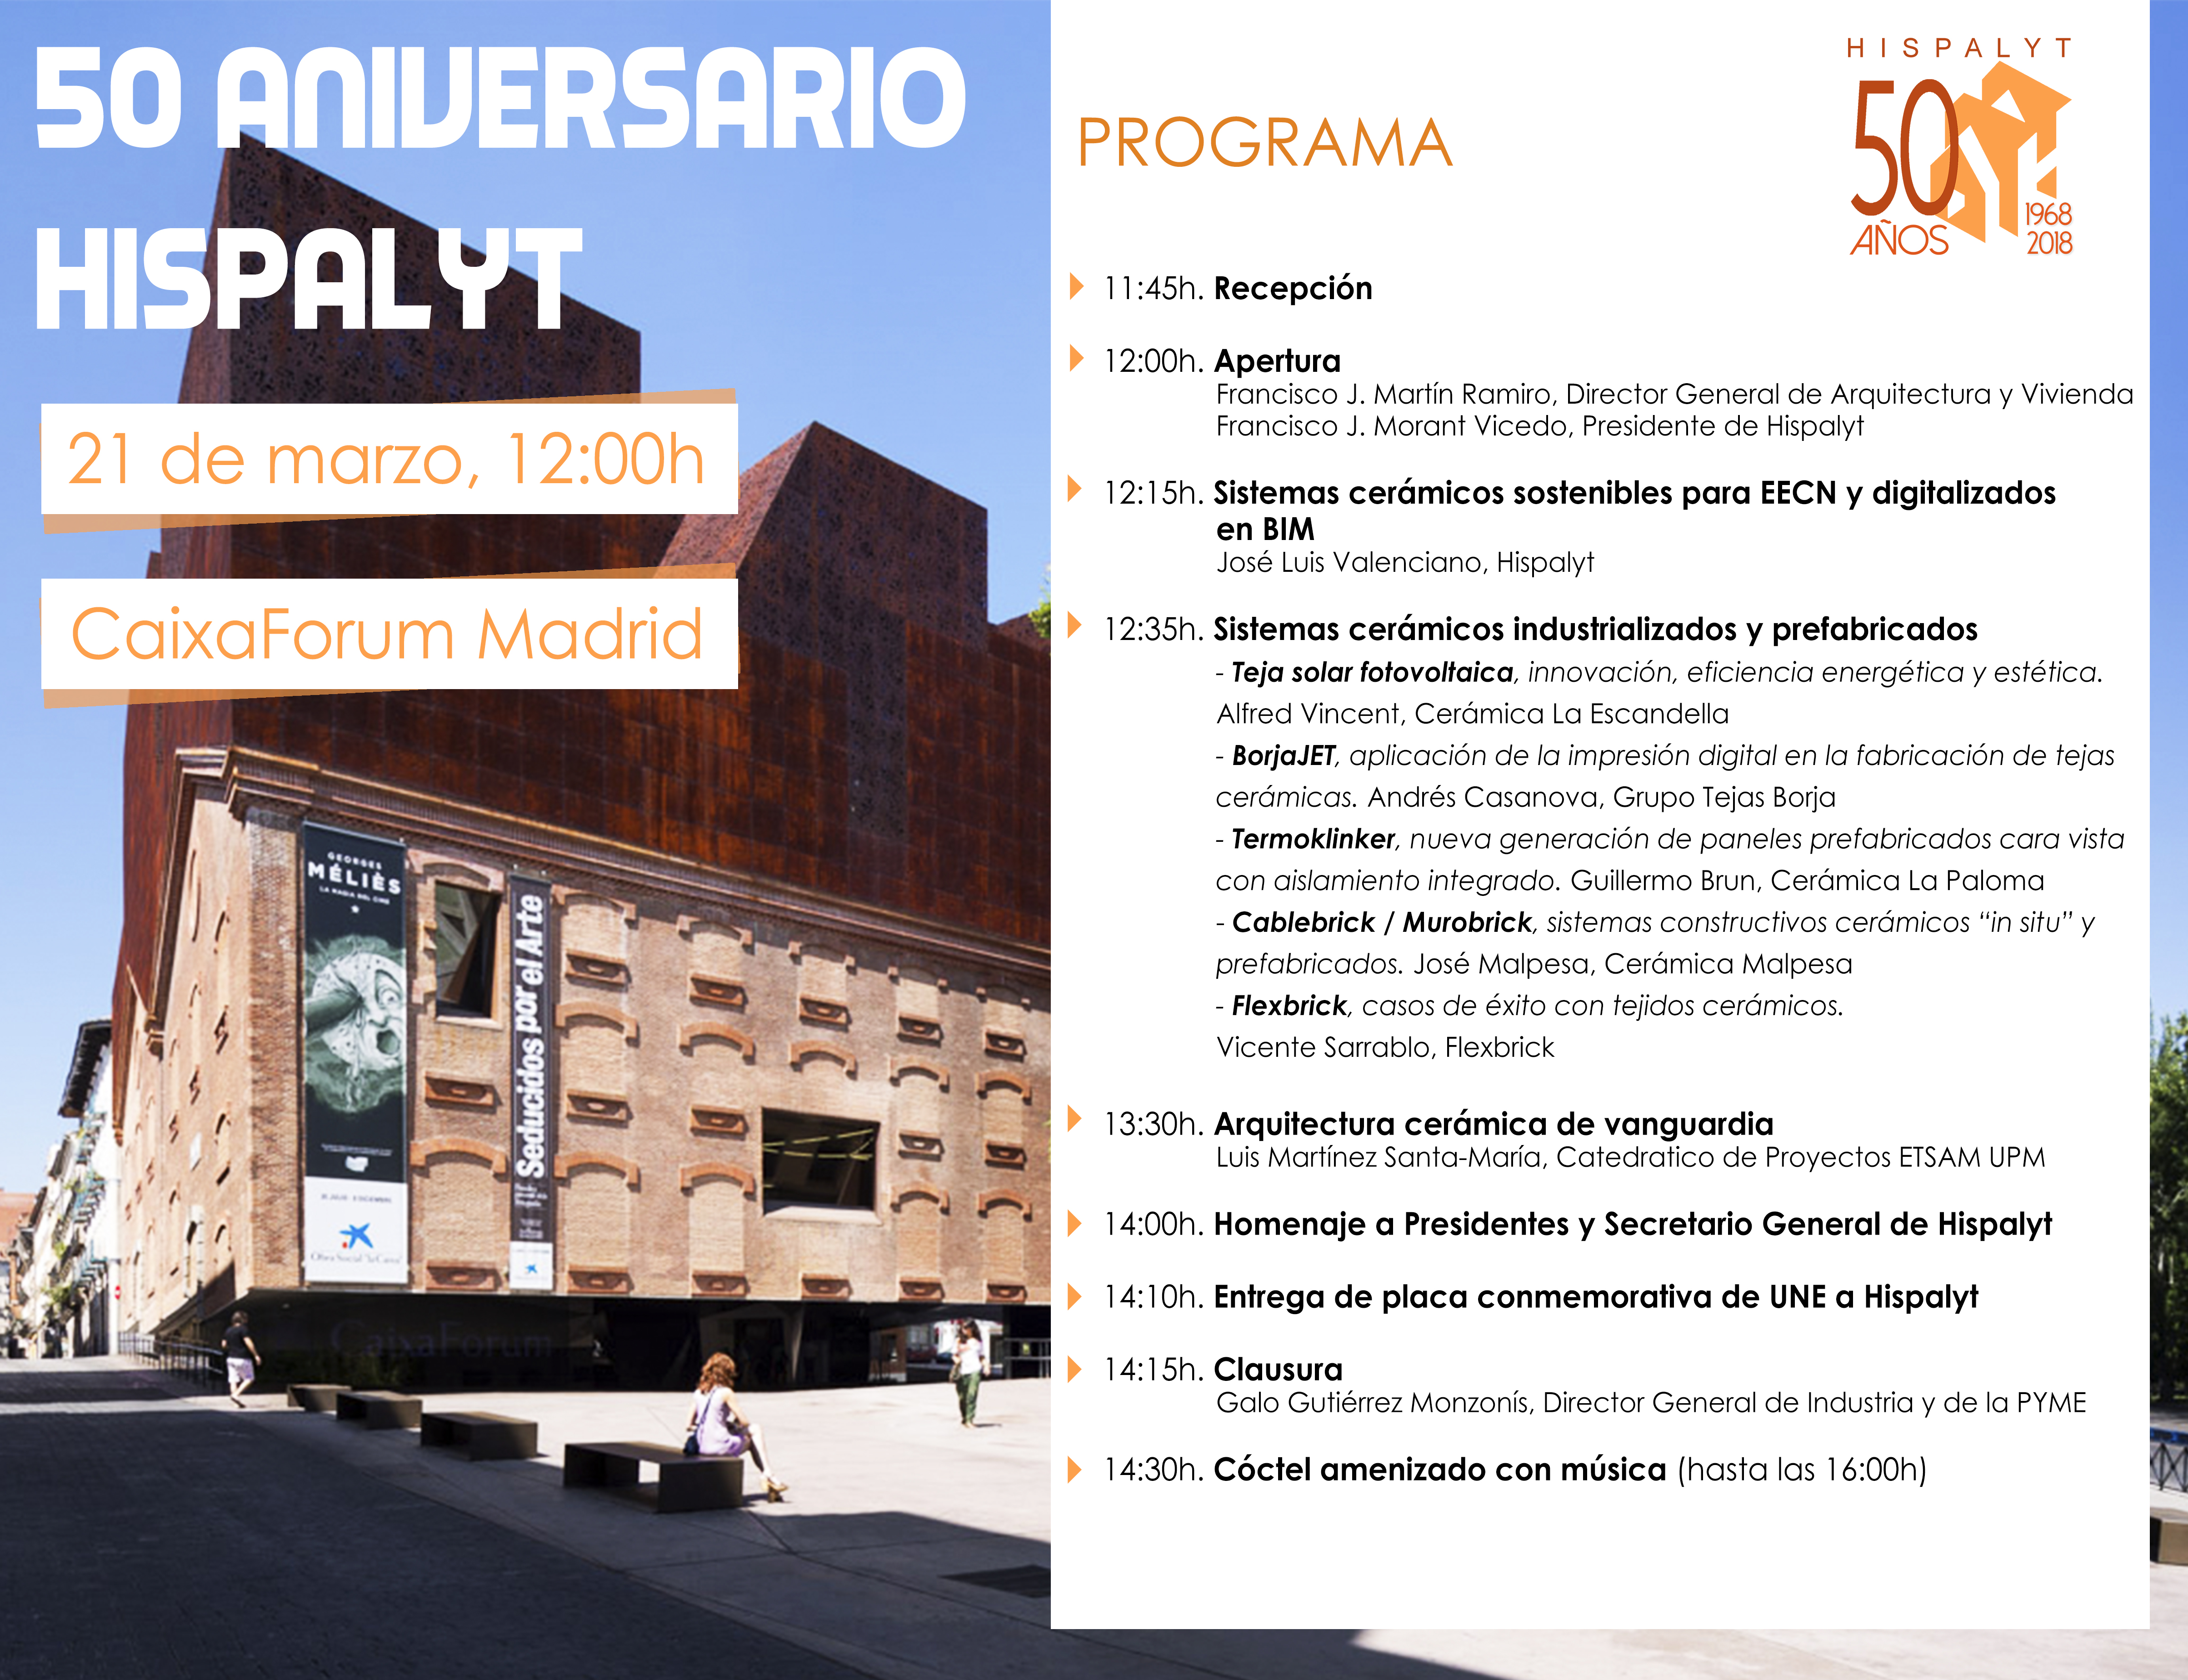 NOTIO 50 aniversario Hispalyt